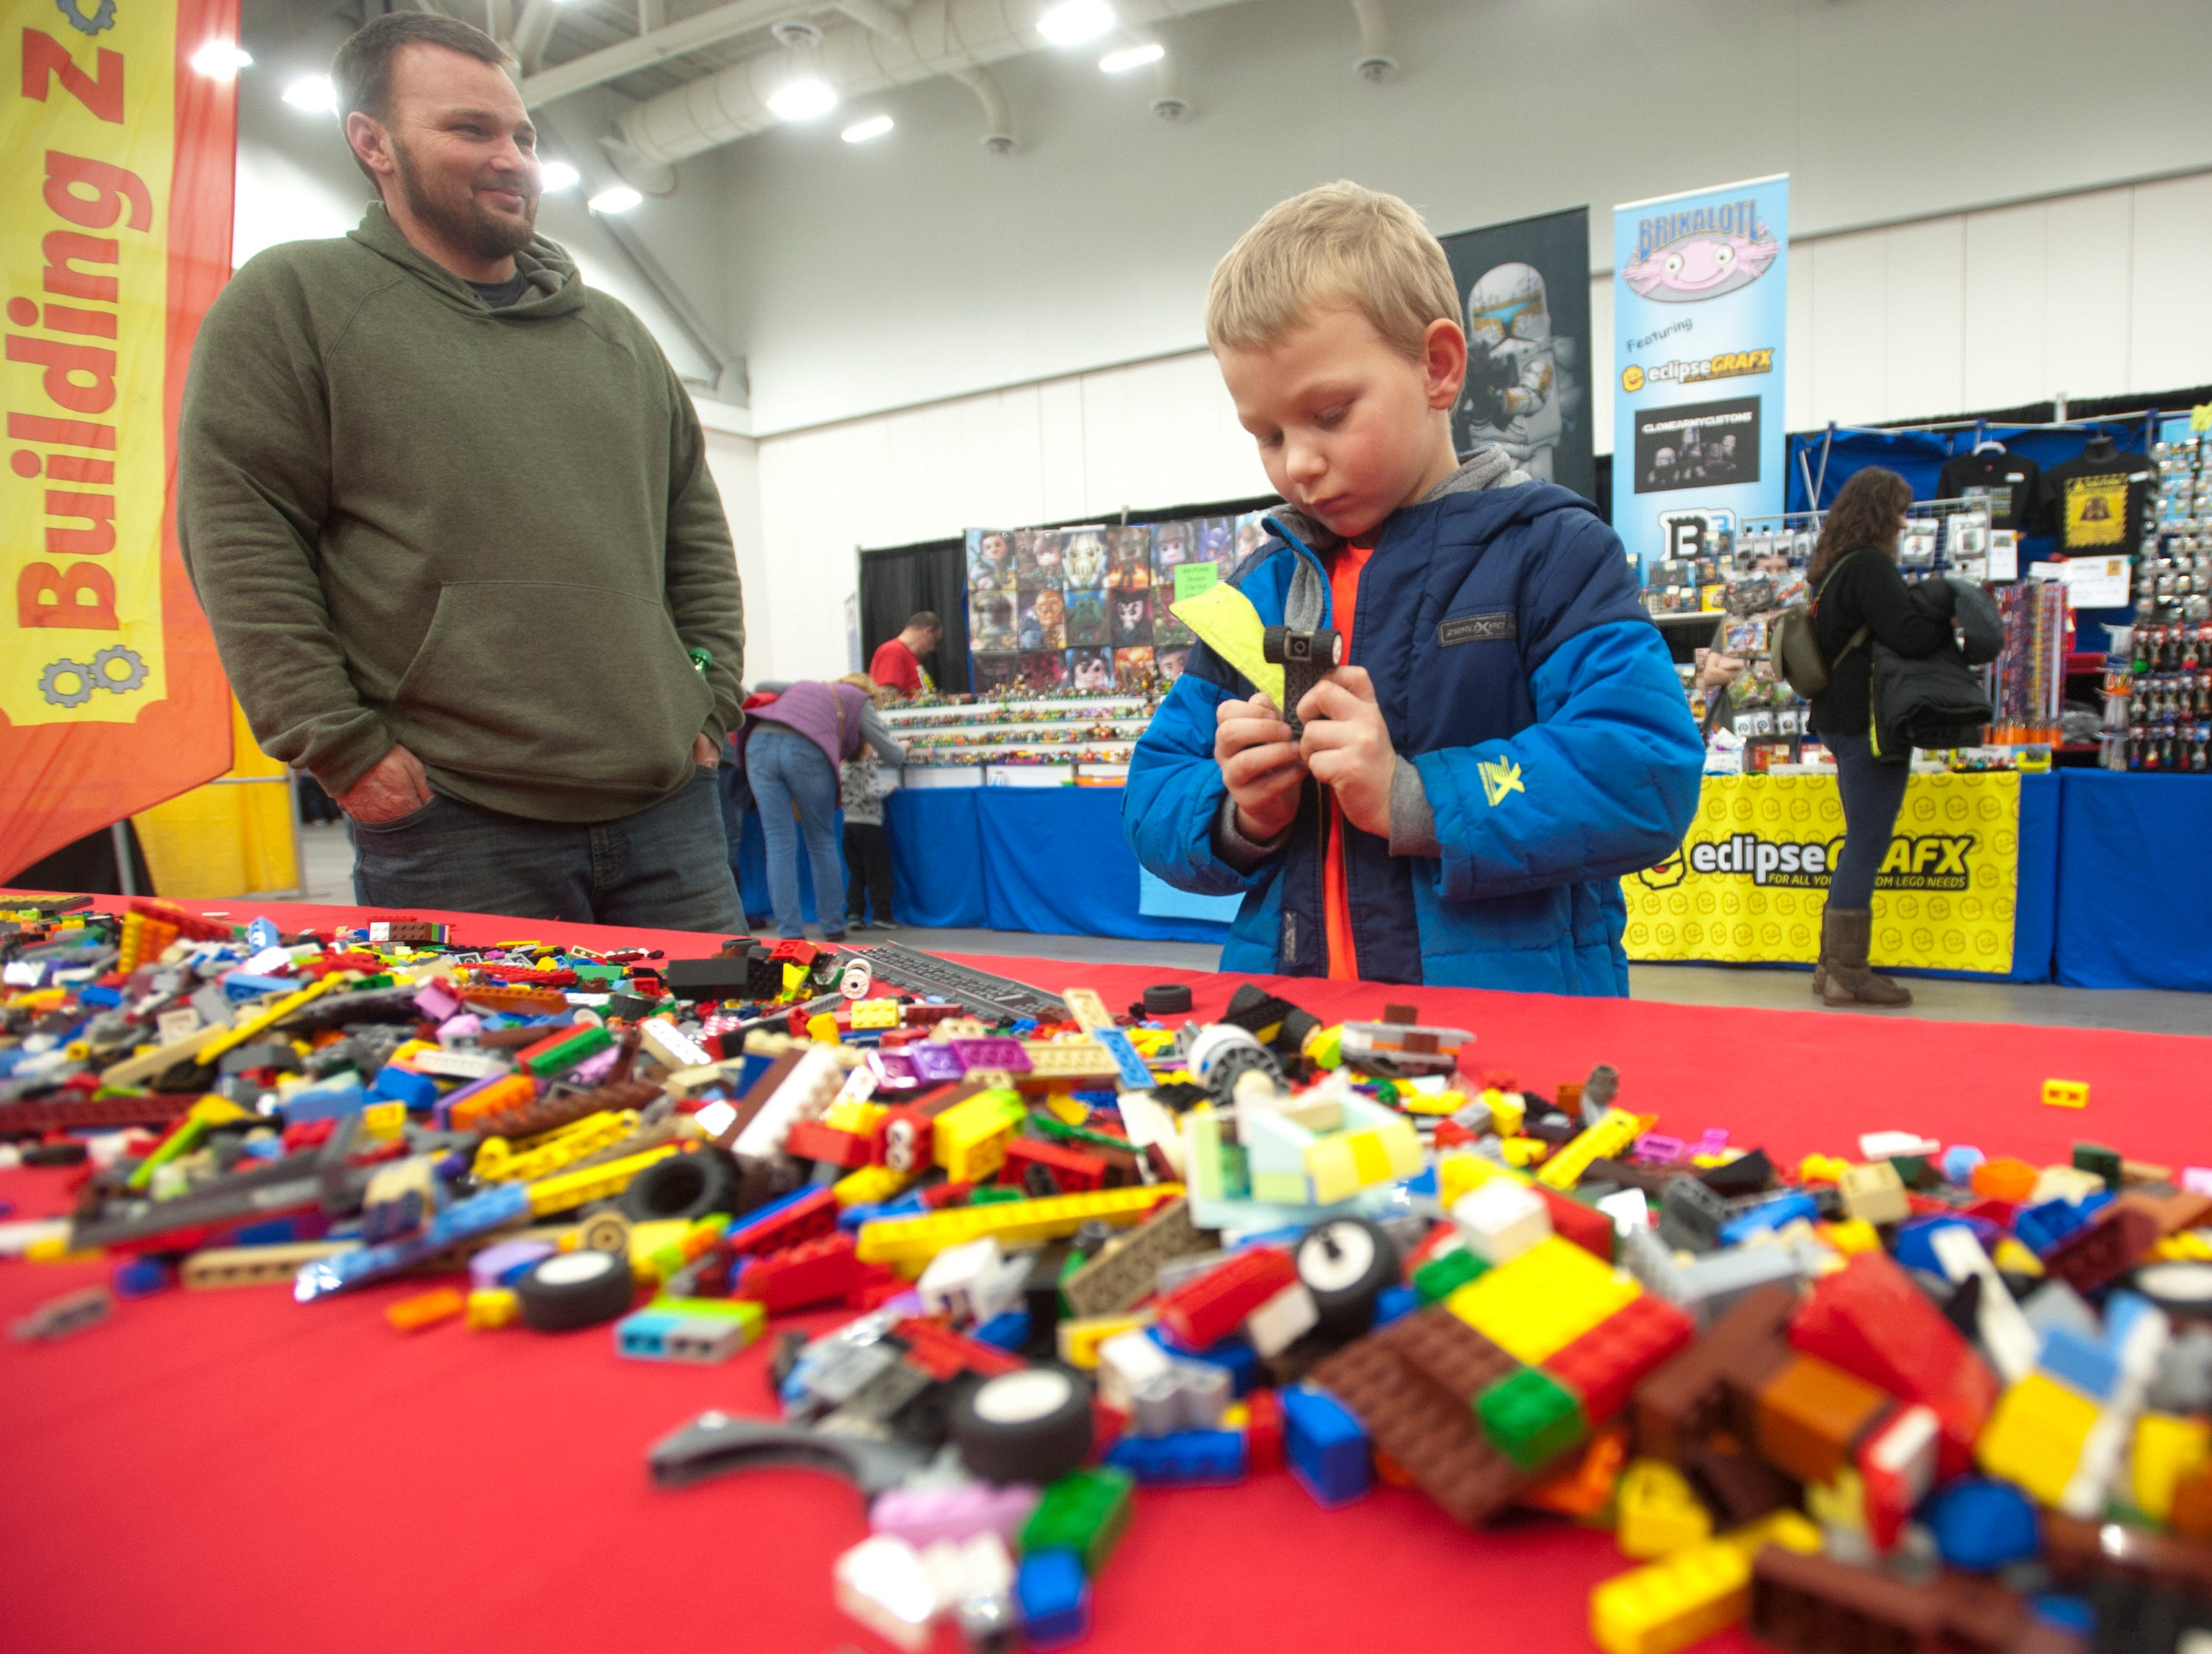 Dad Michael Branch of Crestwood watches his 6-yr-old son, Michael Jr. put together a project at the Lego Building Zone, part of the BrickUniverse Lego Fan Convention at the Kentucky International Convention Center in downtown Louisville.19 January 2019